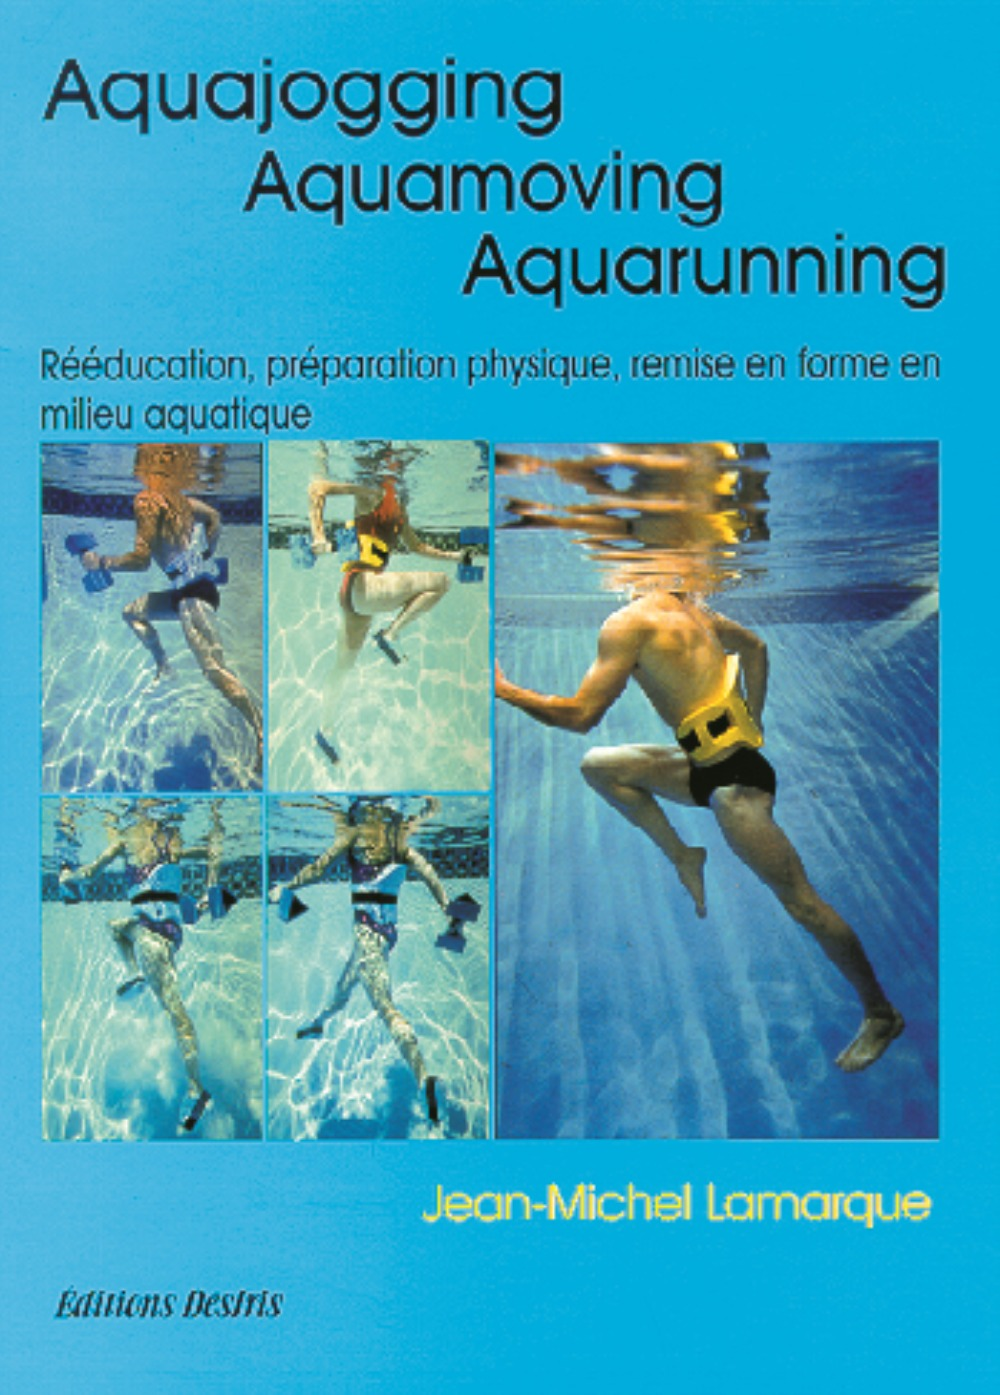 AQUAJOGGING. AQUAMOVING. AQUARUNNING